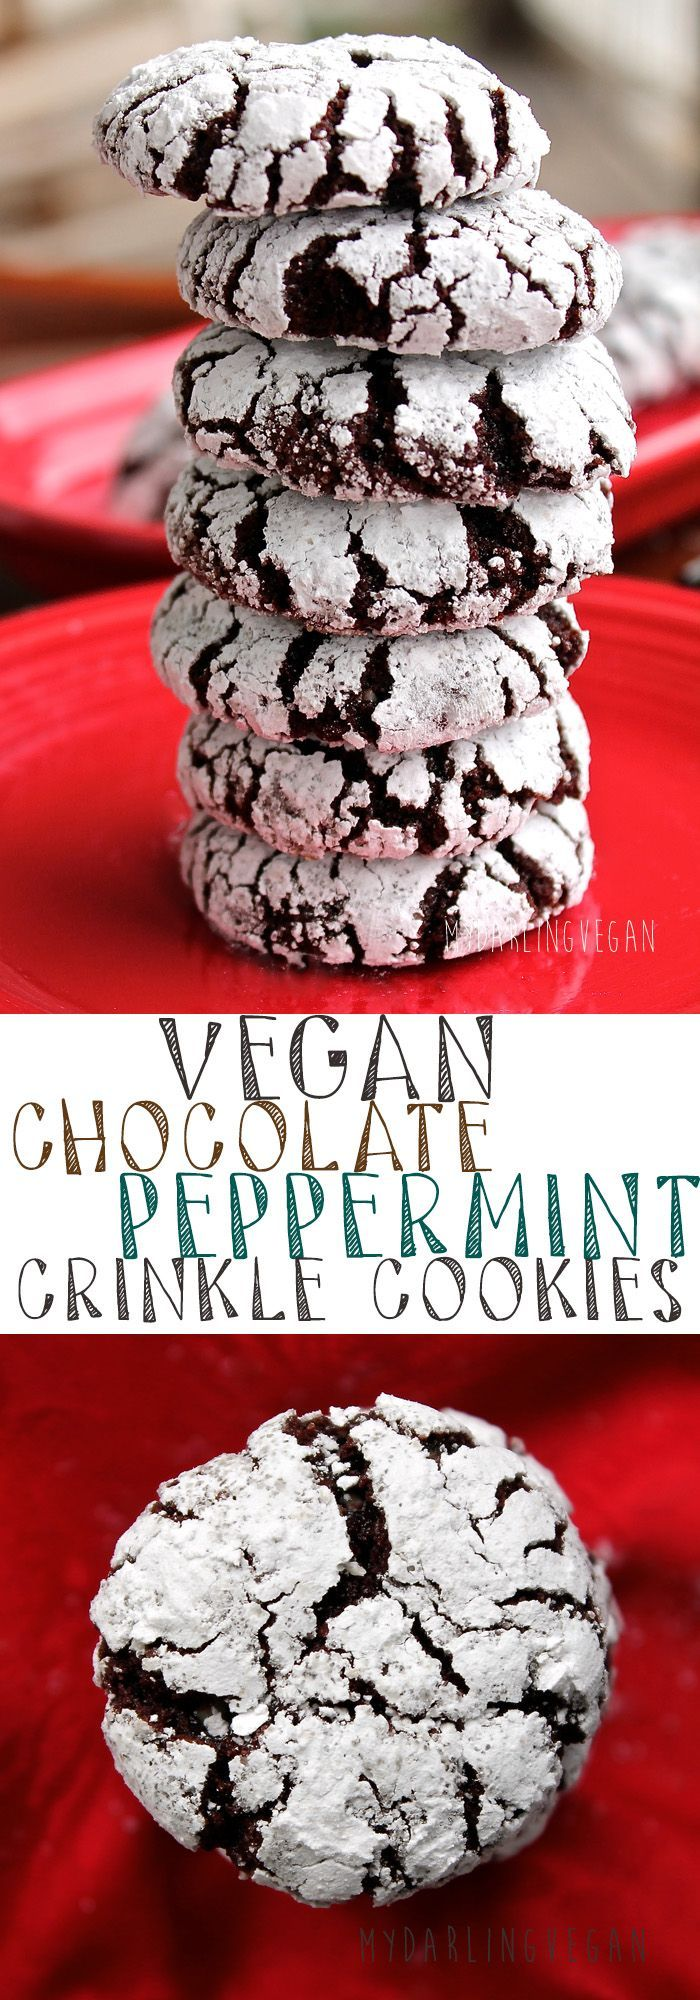 Nothing says Christmas quite like these Chocolate Peppermint Crinkle Cookies. Impress all your friends with these incredible vegan cookies. Click the link for the full recipe.